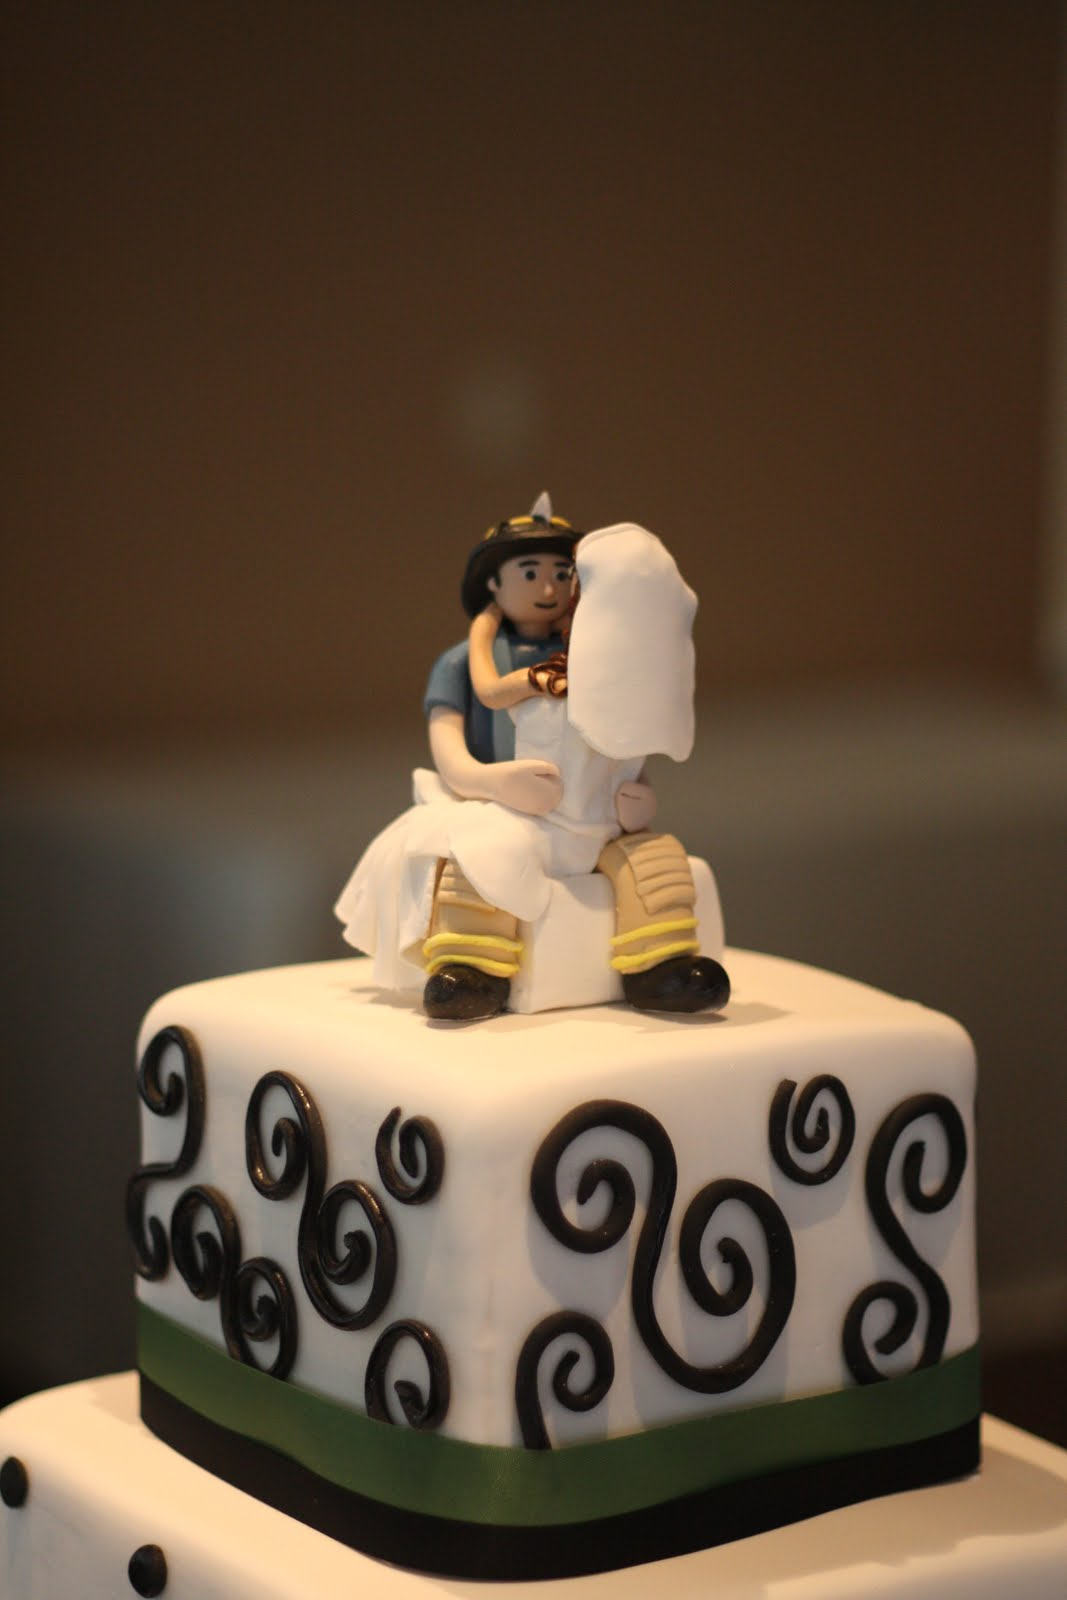 Becca S Blue Bakery Bride And Groom Fondant Figurine